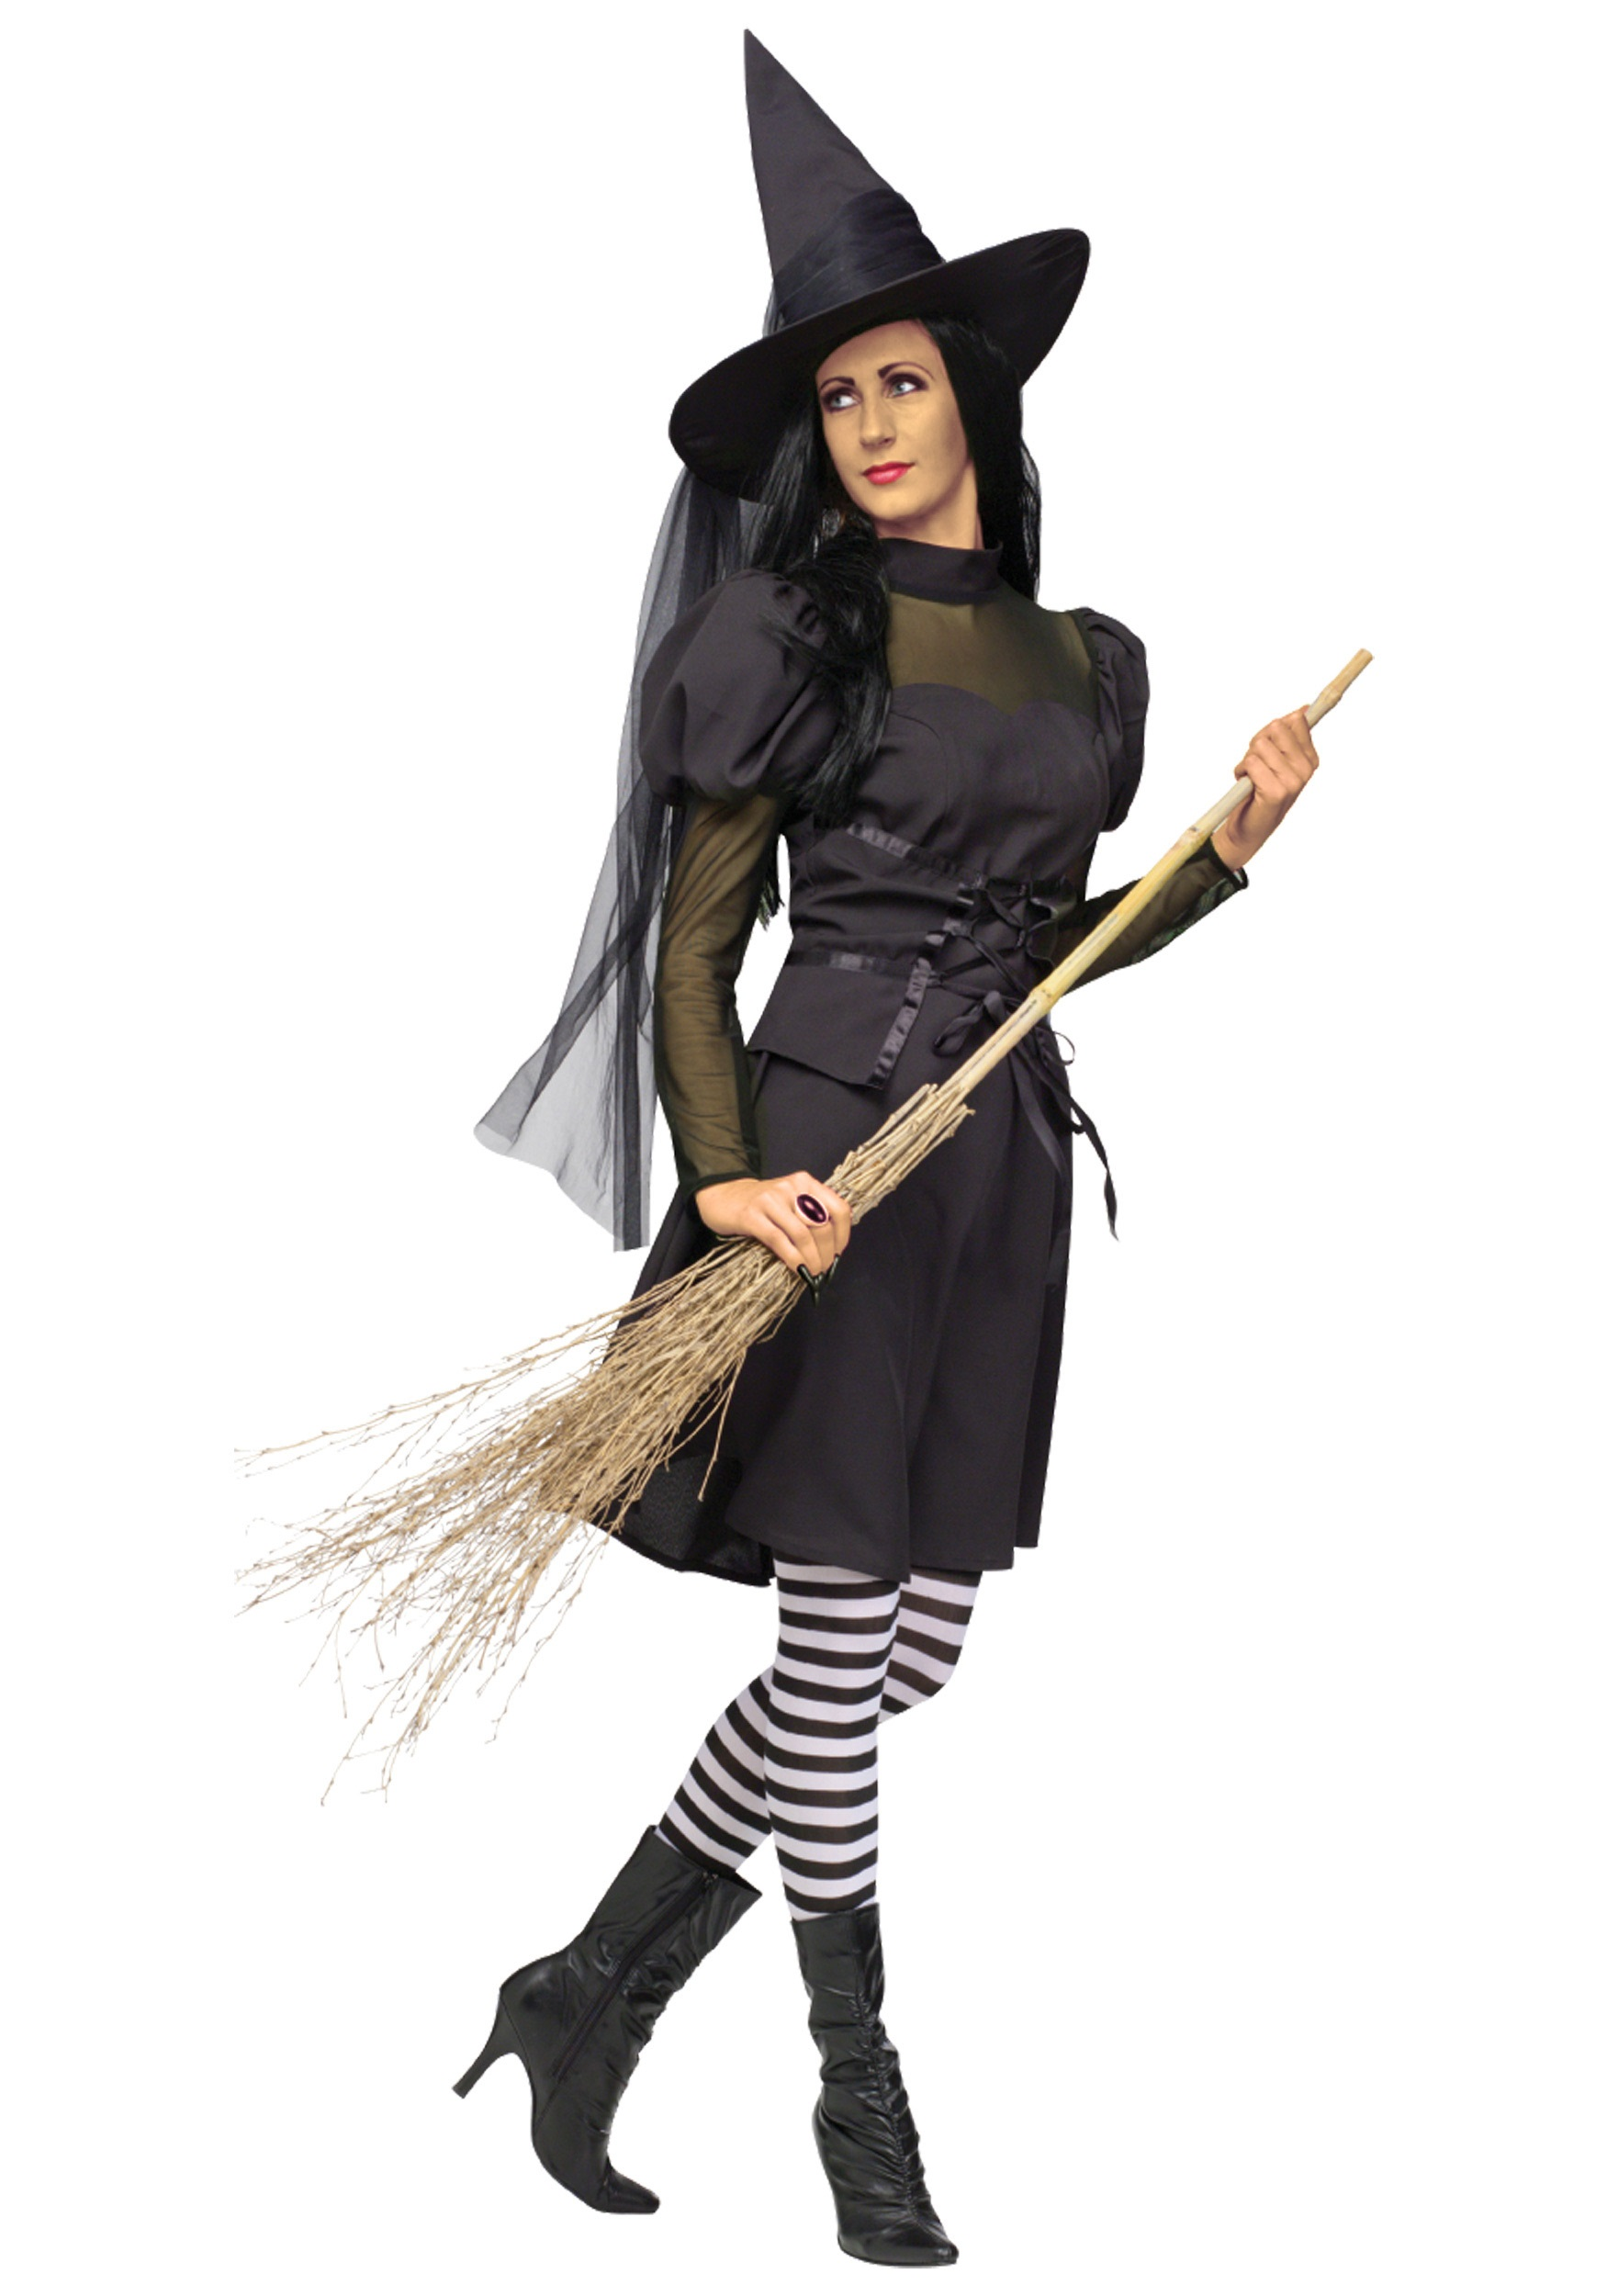 Adult Ms Witch Costume Halloween Costume Ideas 2019